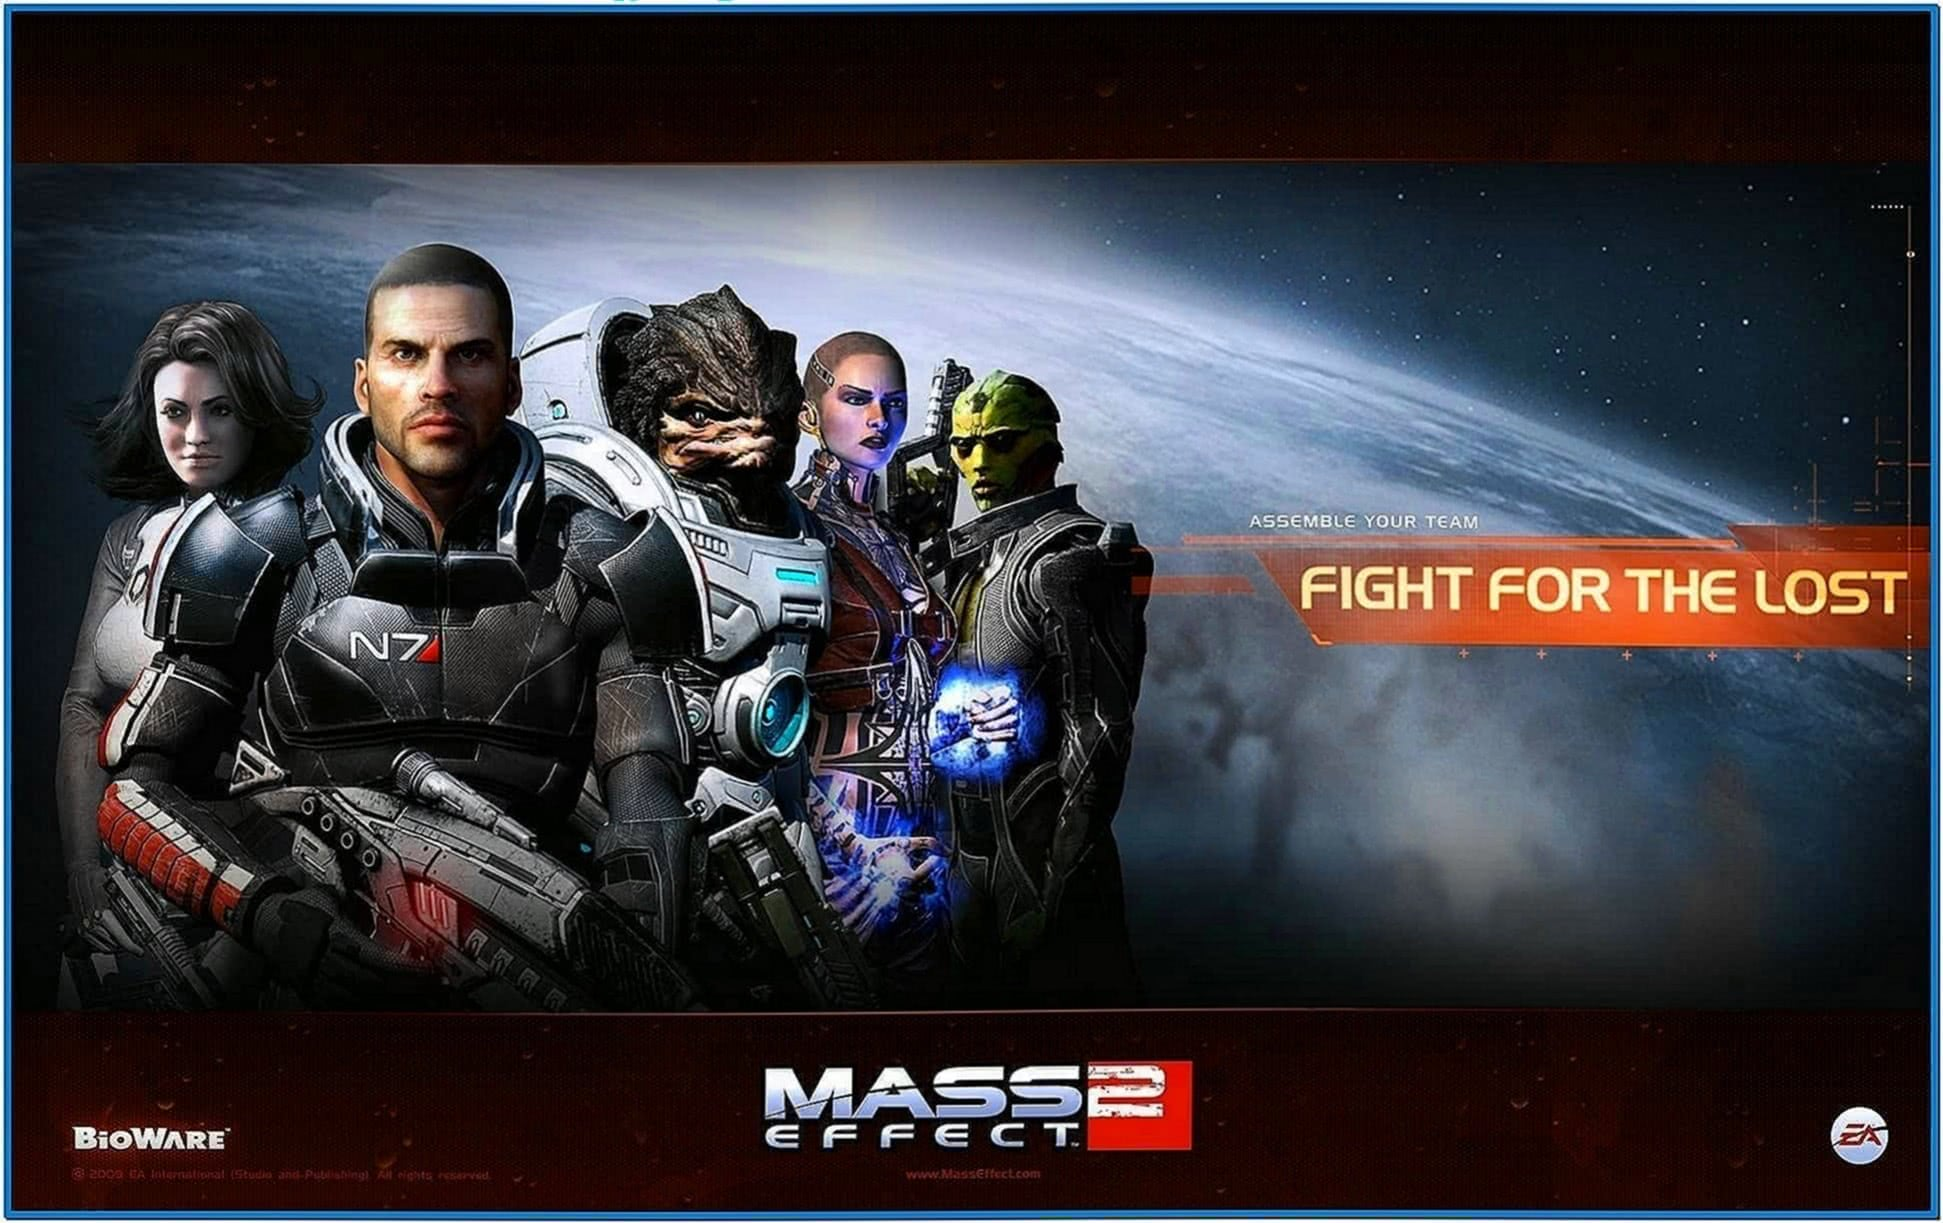 Mass Effect 2 Screensaver